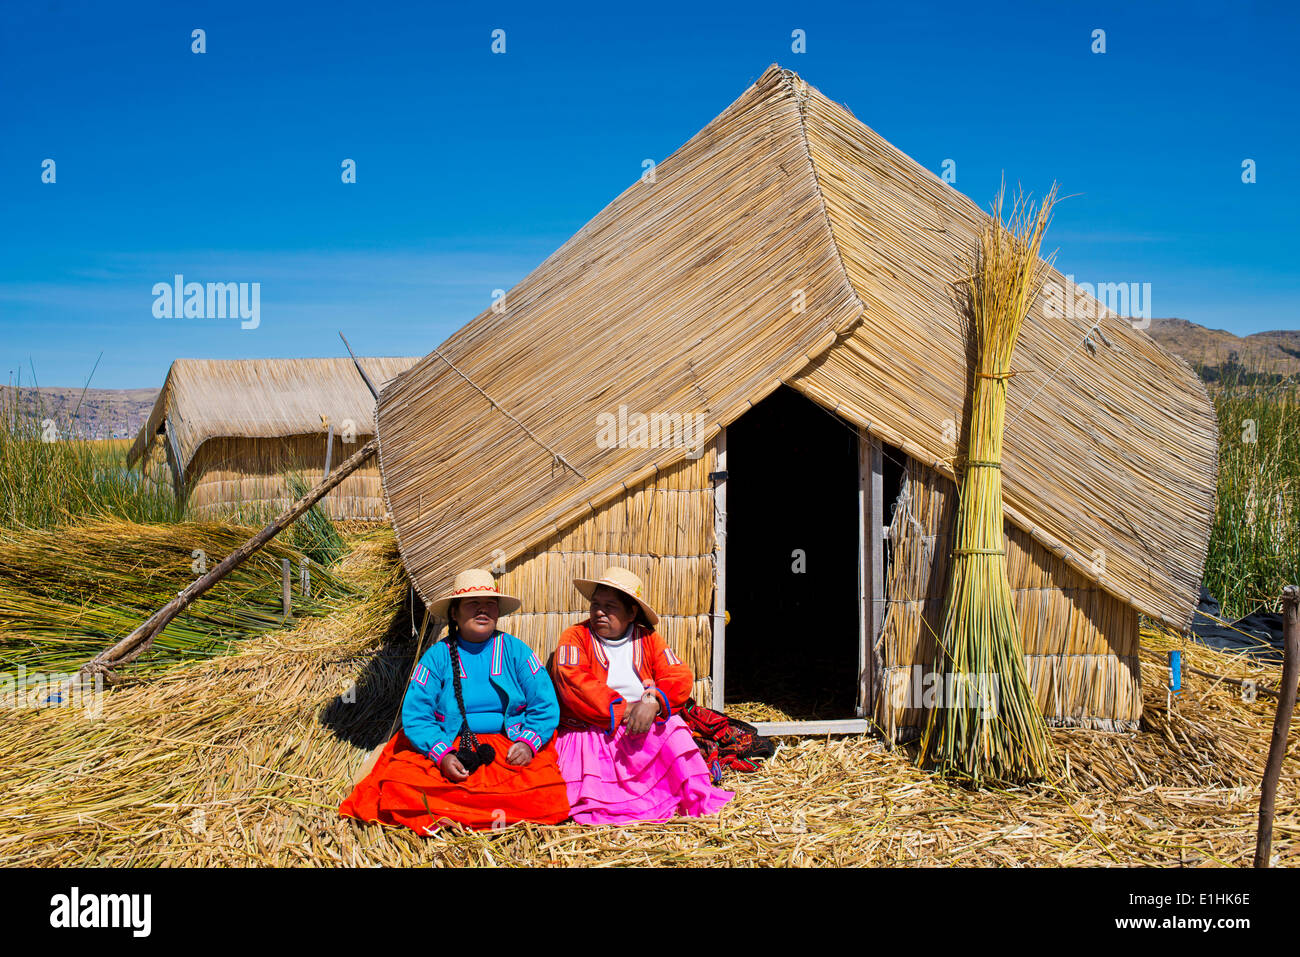 Two women of the Uro Indians wearing traditional dress sitting in front of a reed hut, floating islands made of Stock Foto